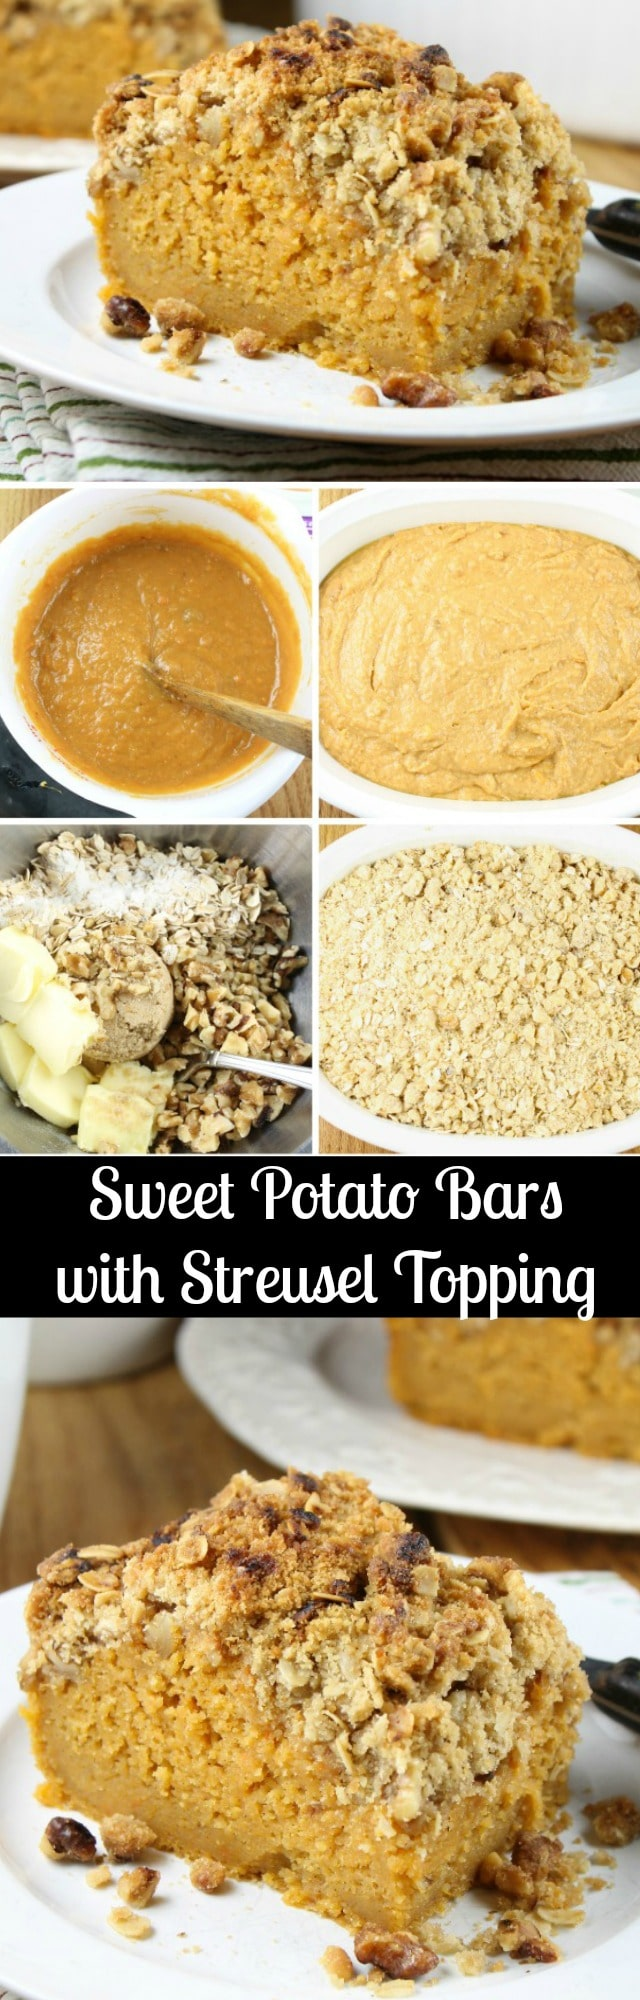 Sweet Potato Bars with Streusel Topping Recipe found at MissintheKitchen.com with Bob Evans Farms #Sponsored